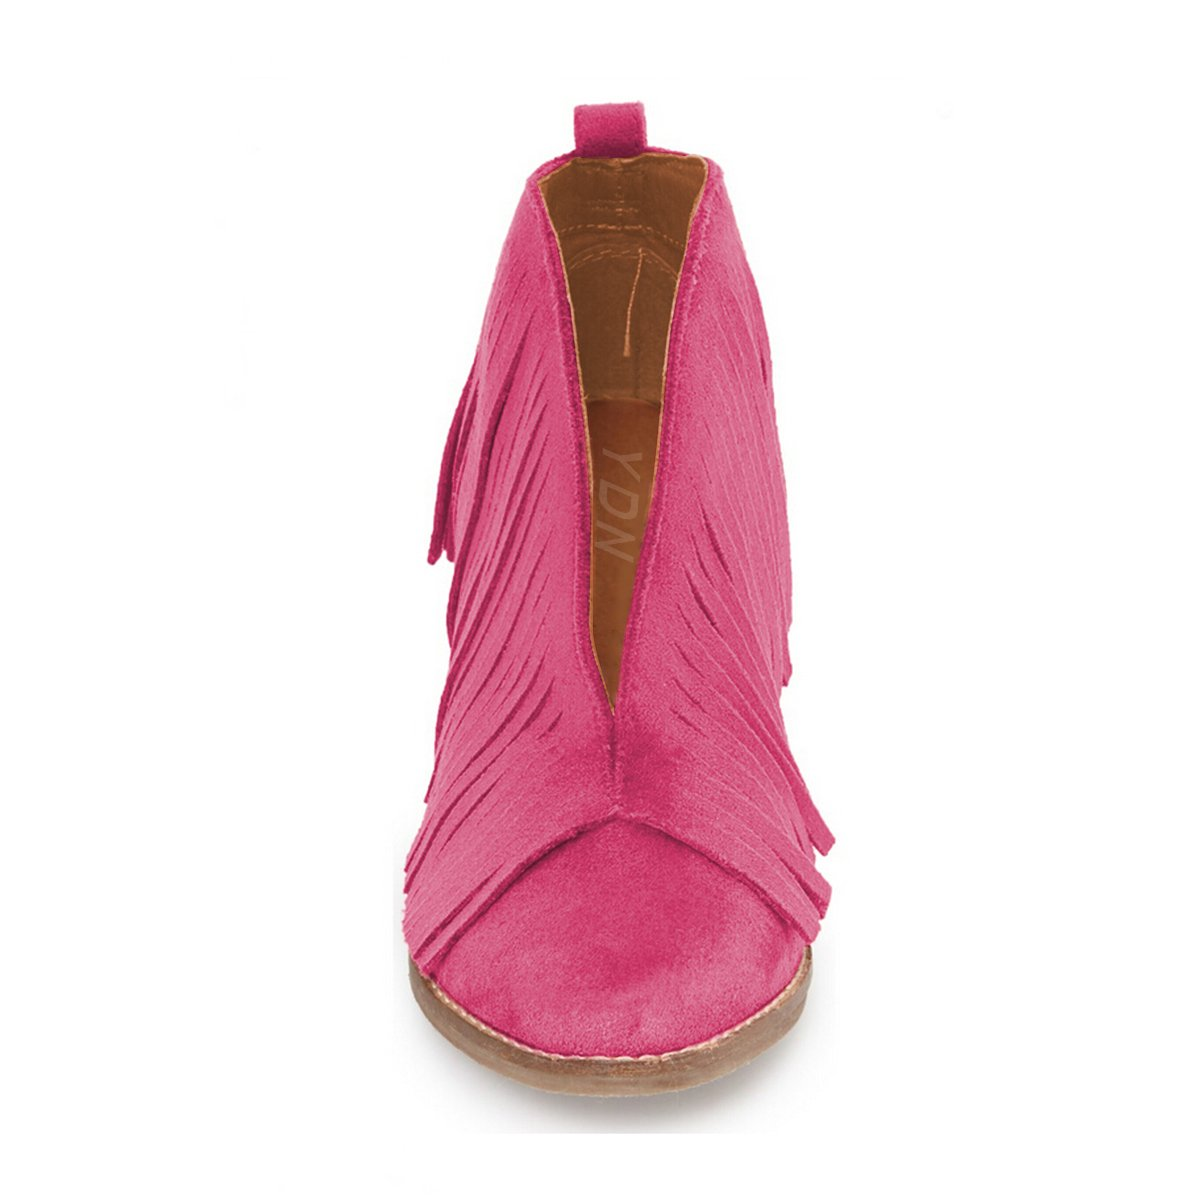 YDN Western Ankle High Boots with Tassels Round Toe Block Heel Suede Retro Booties B01KC29ZX8 13 B(M) US|Fuchsia